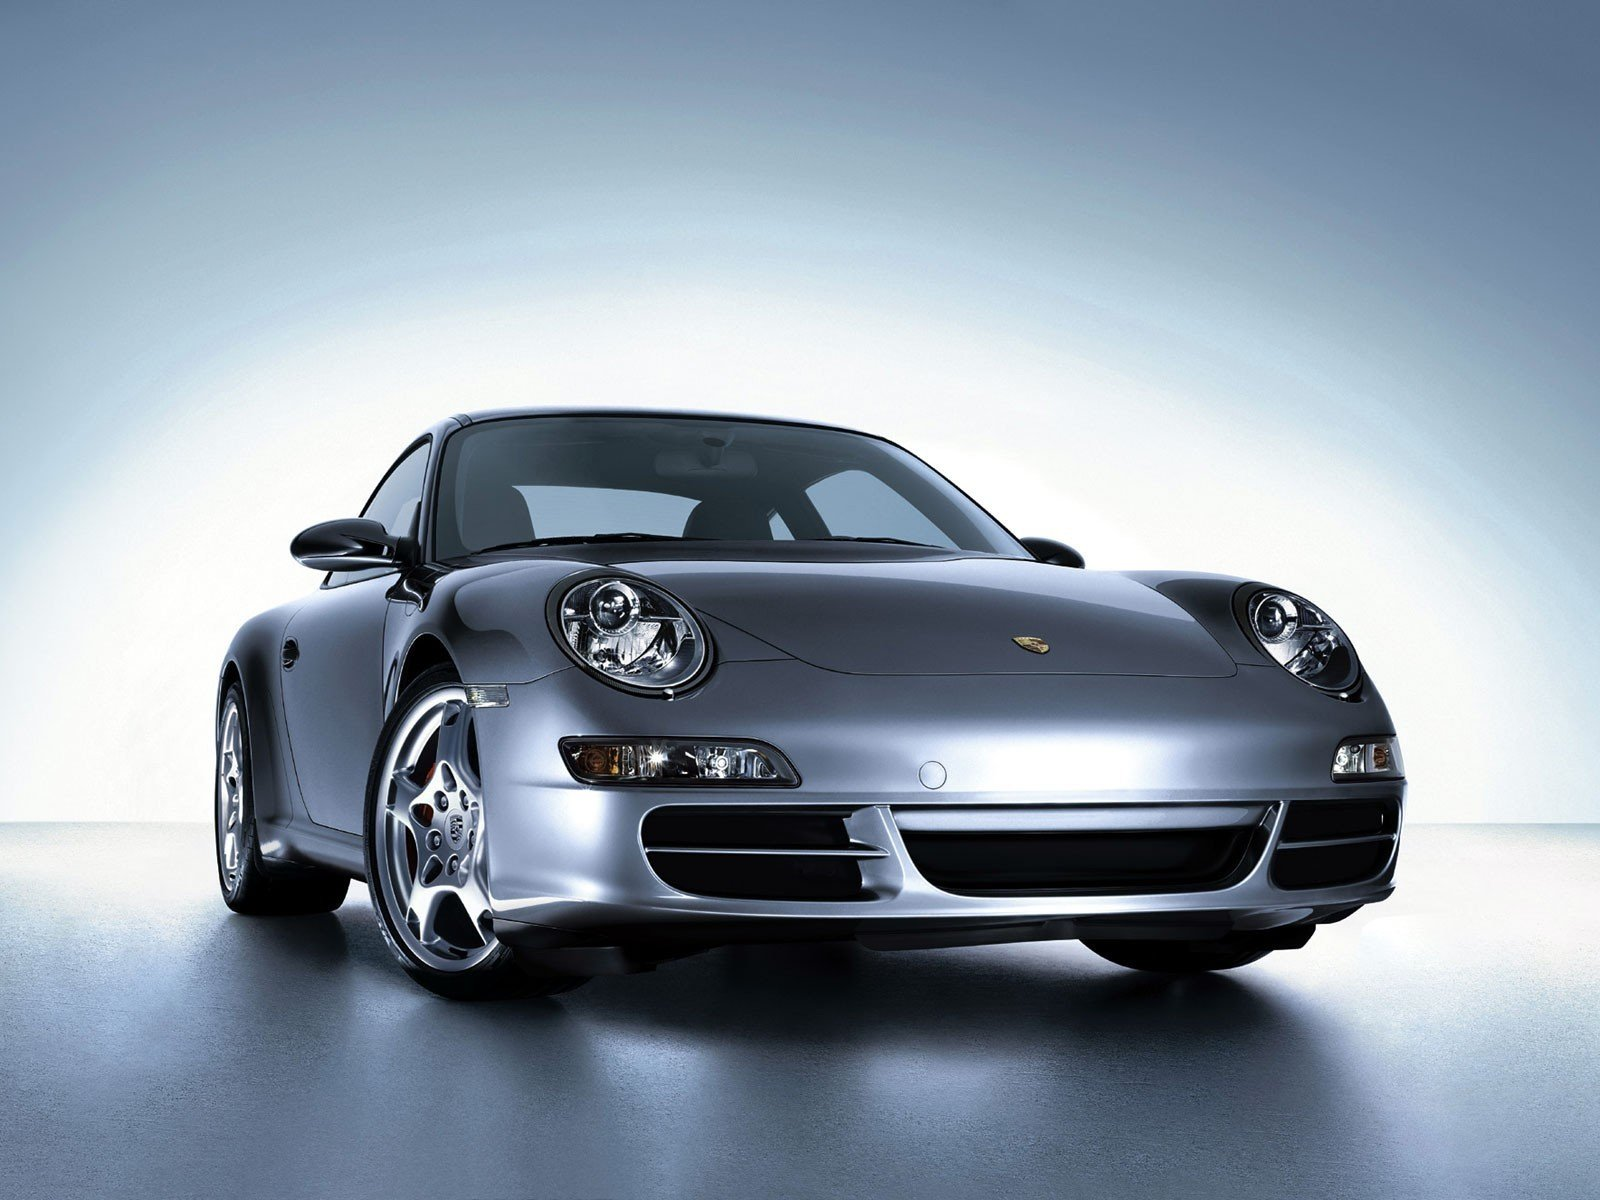 2005 porsche 911 carrera 997 review gallery top speed. Black Bedroom Furniture Sets. Home Design Ideas